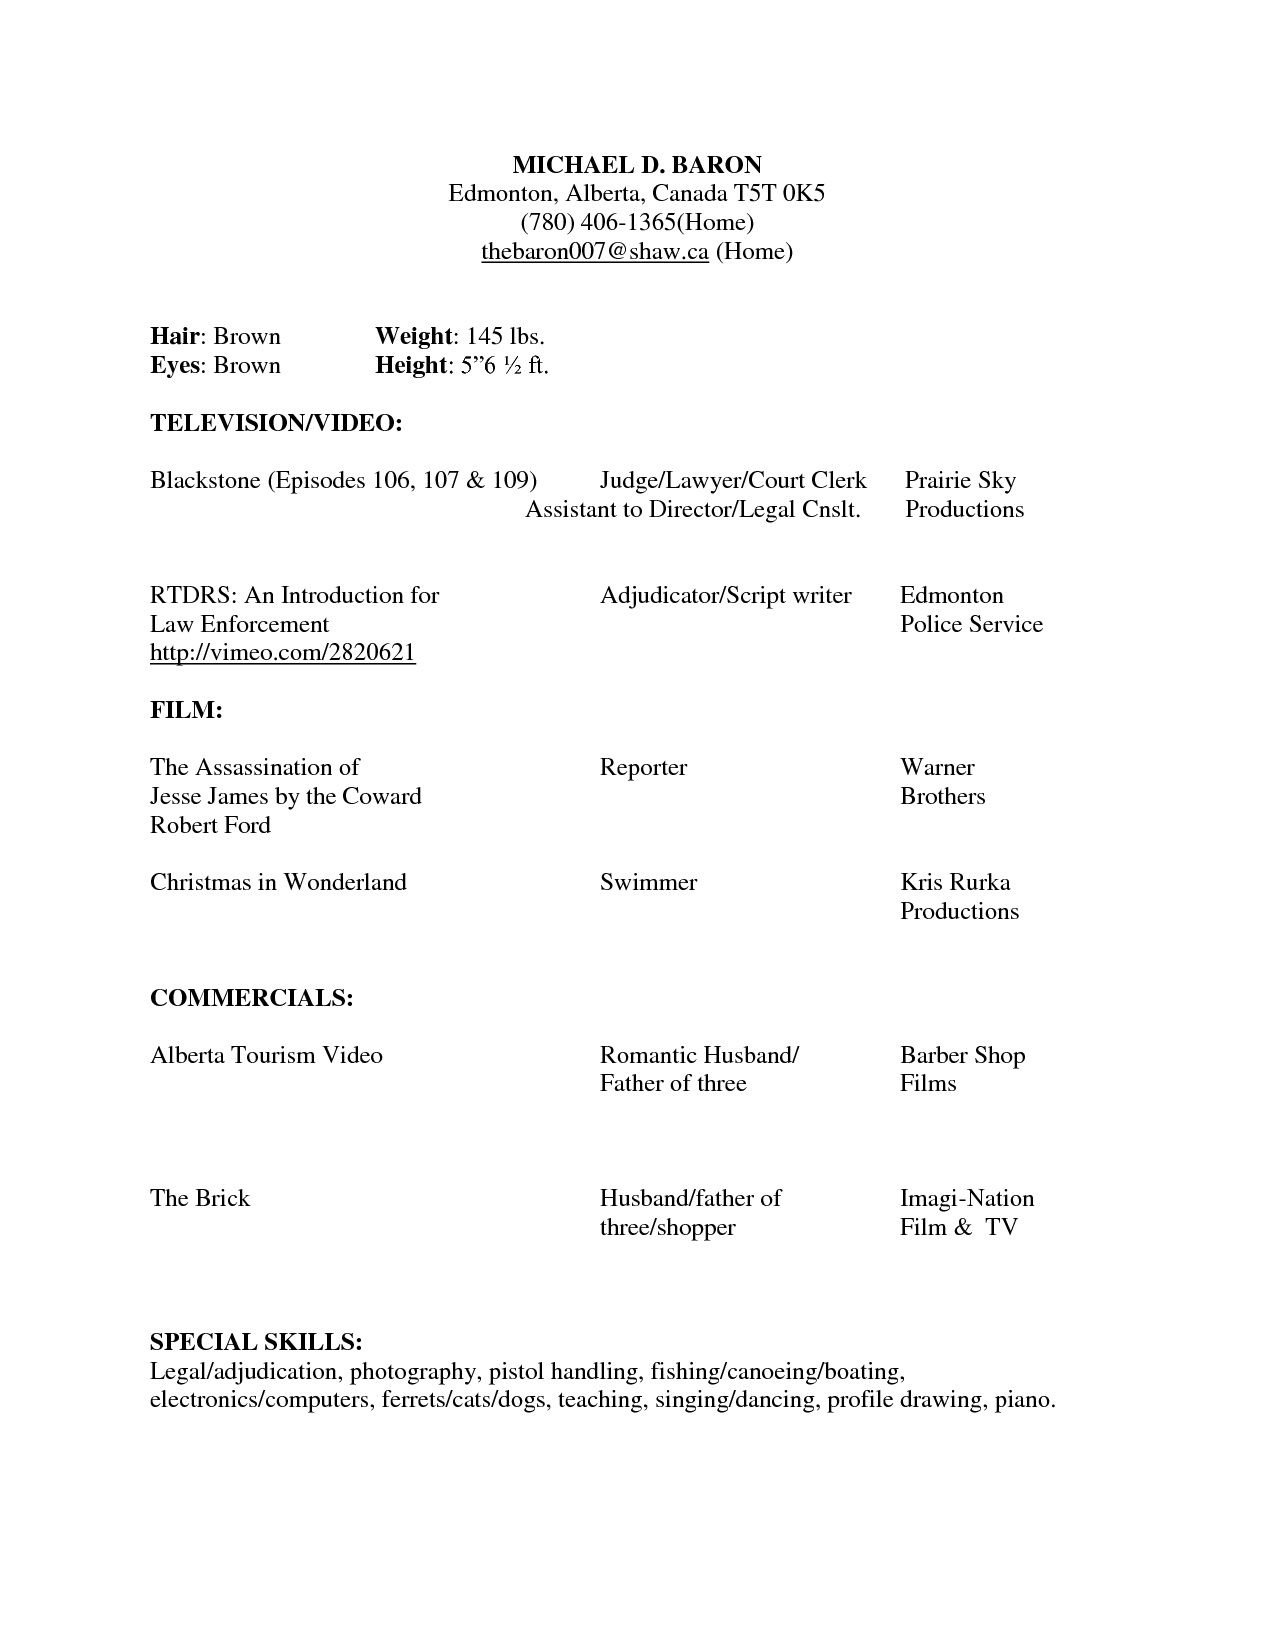 Beginner Acting Resume Sample  Beginner Acting Resume Sample Are